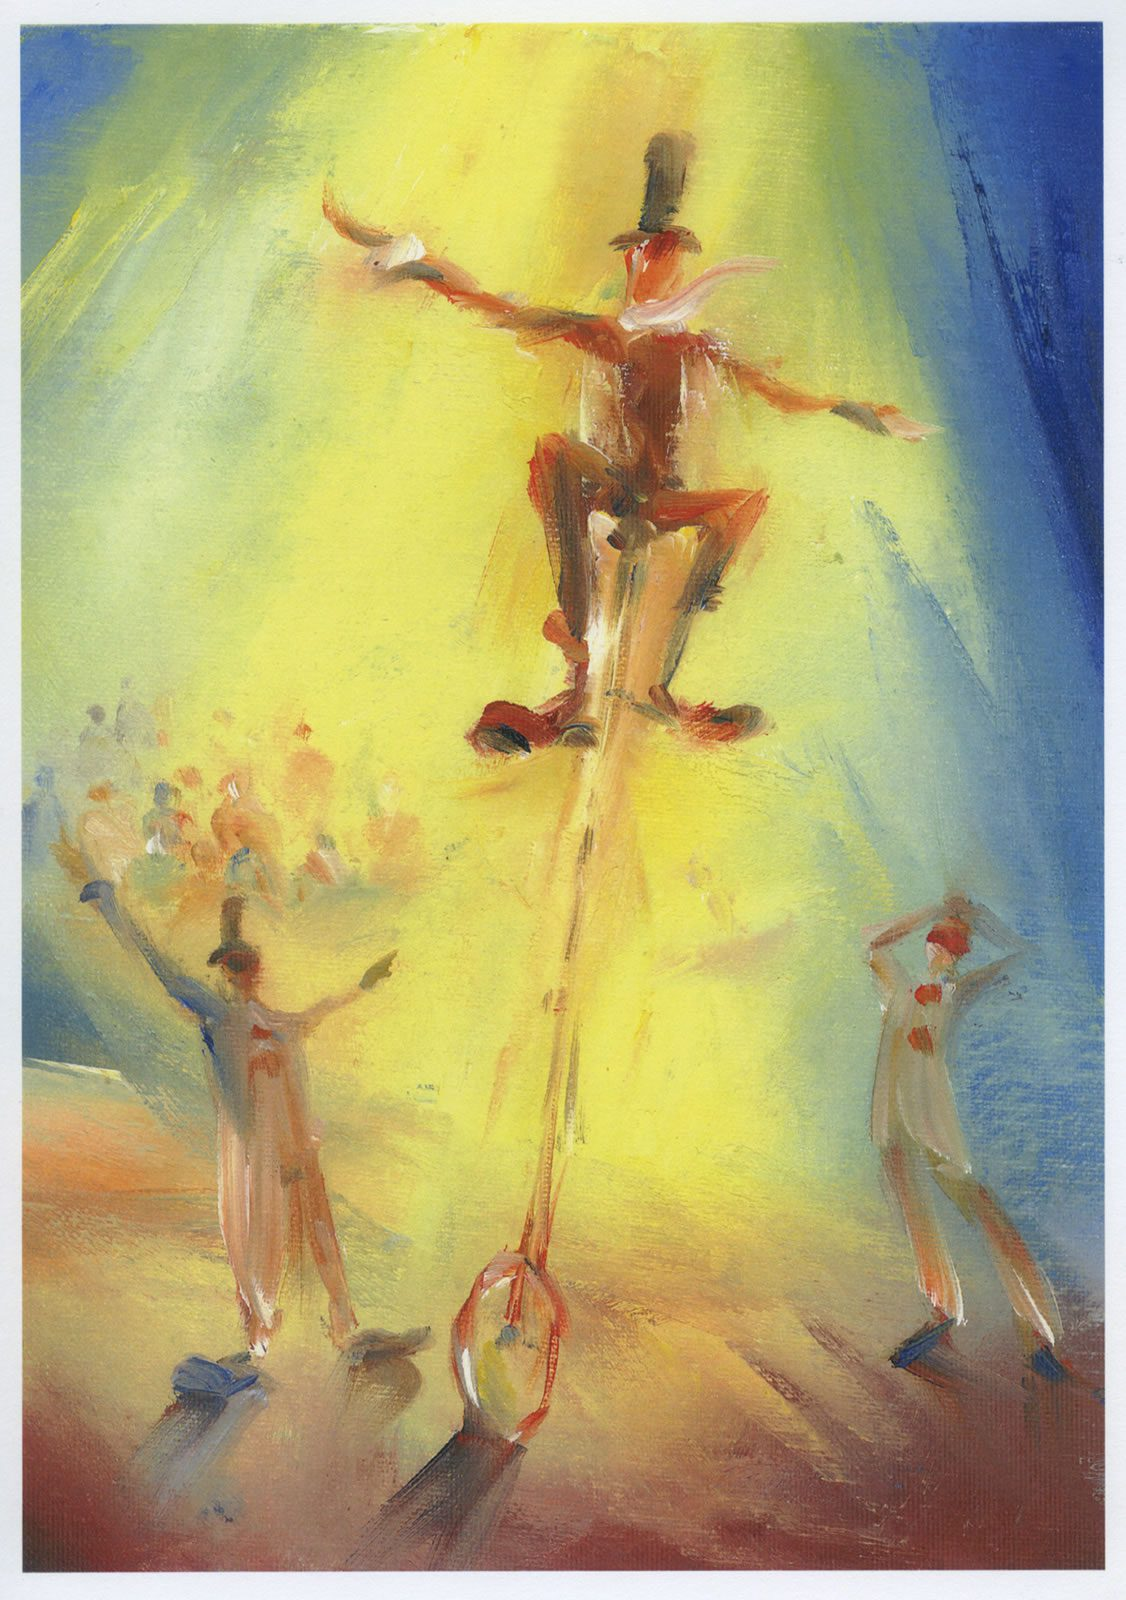 Look No Hands – circus study from an original painting by Stewart Taylor